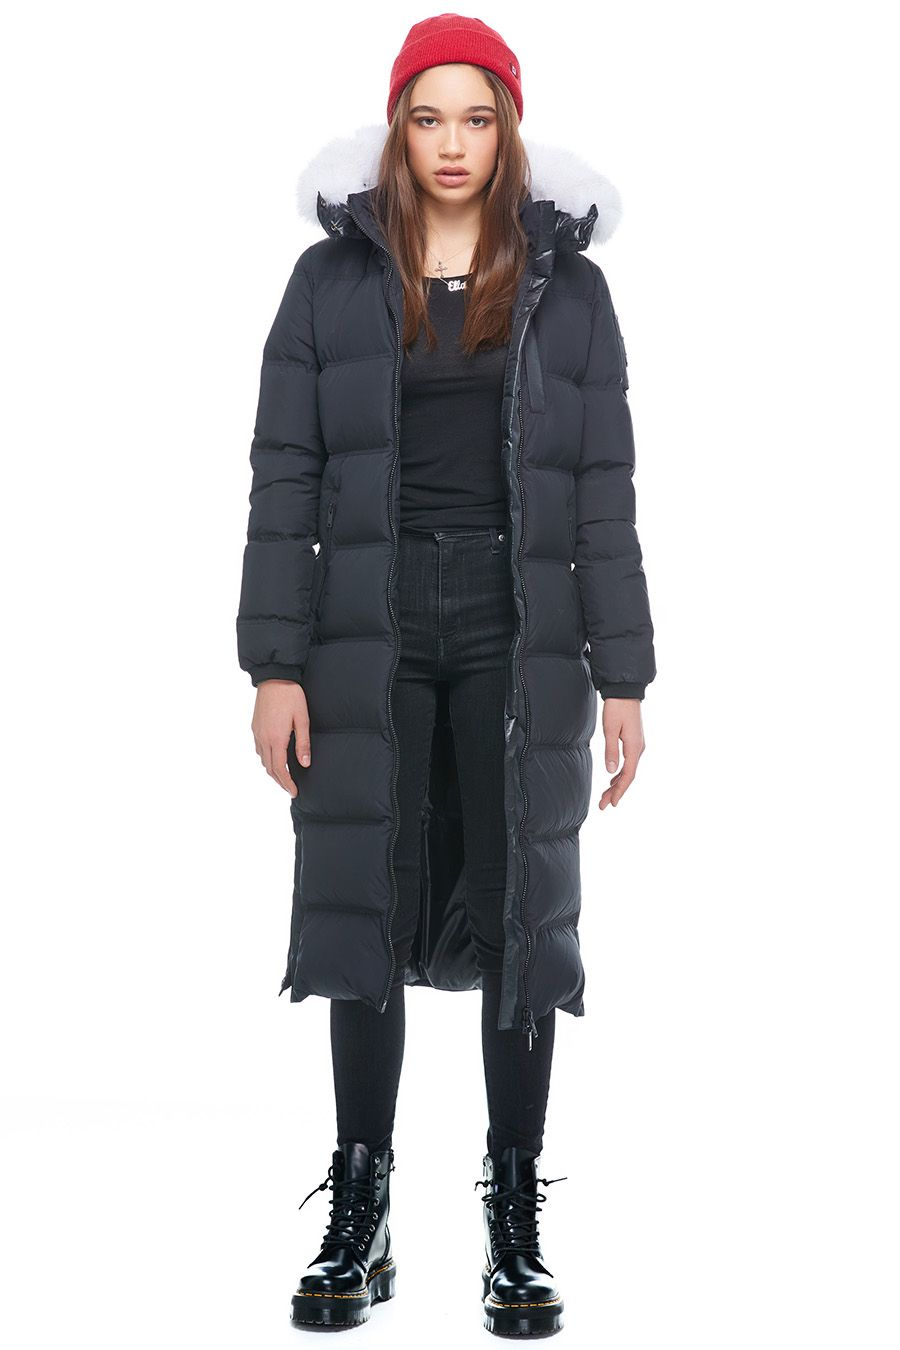 FOX VALLEY PARKA Black w Natural